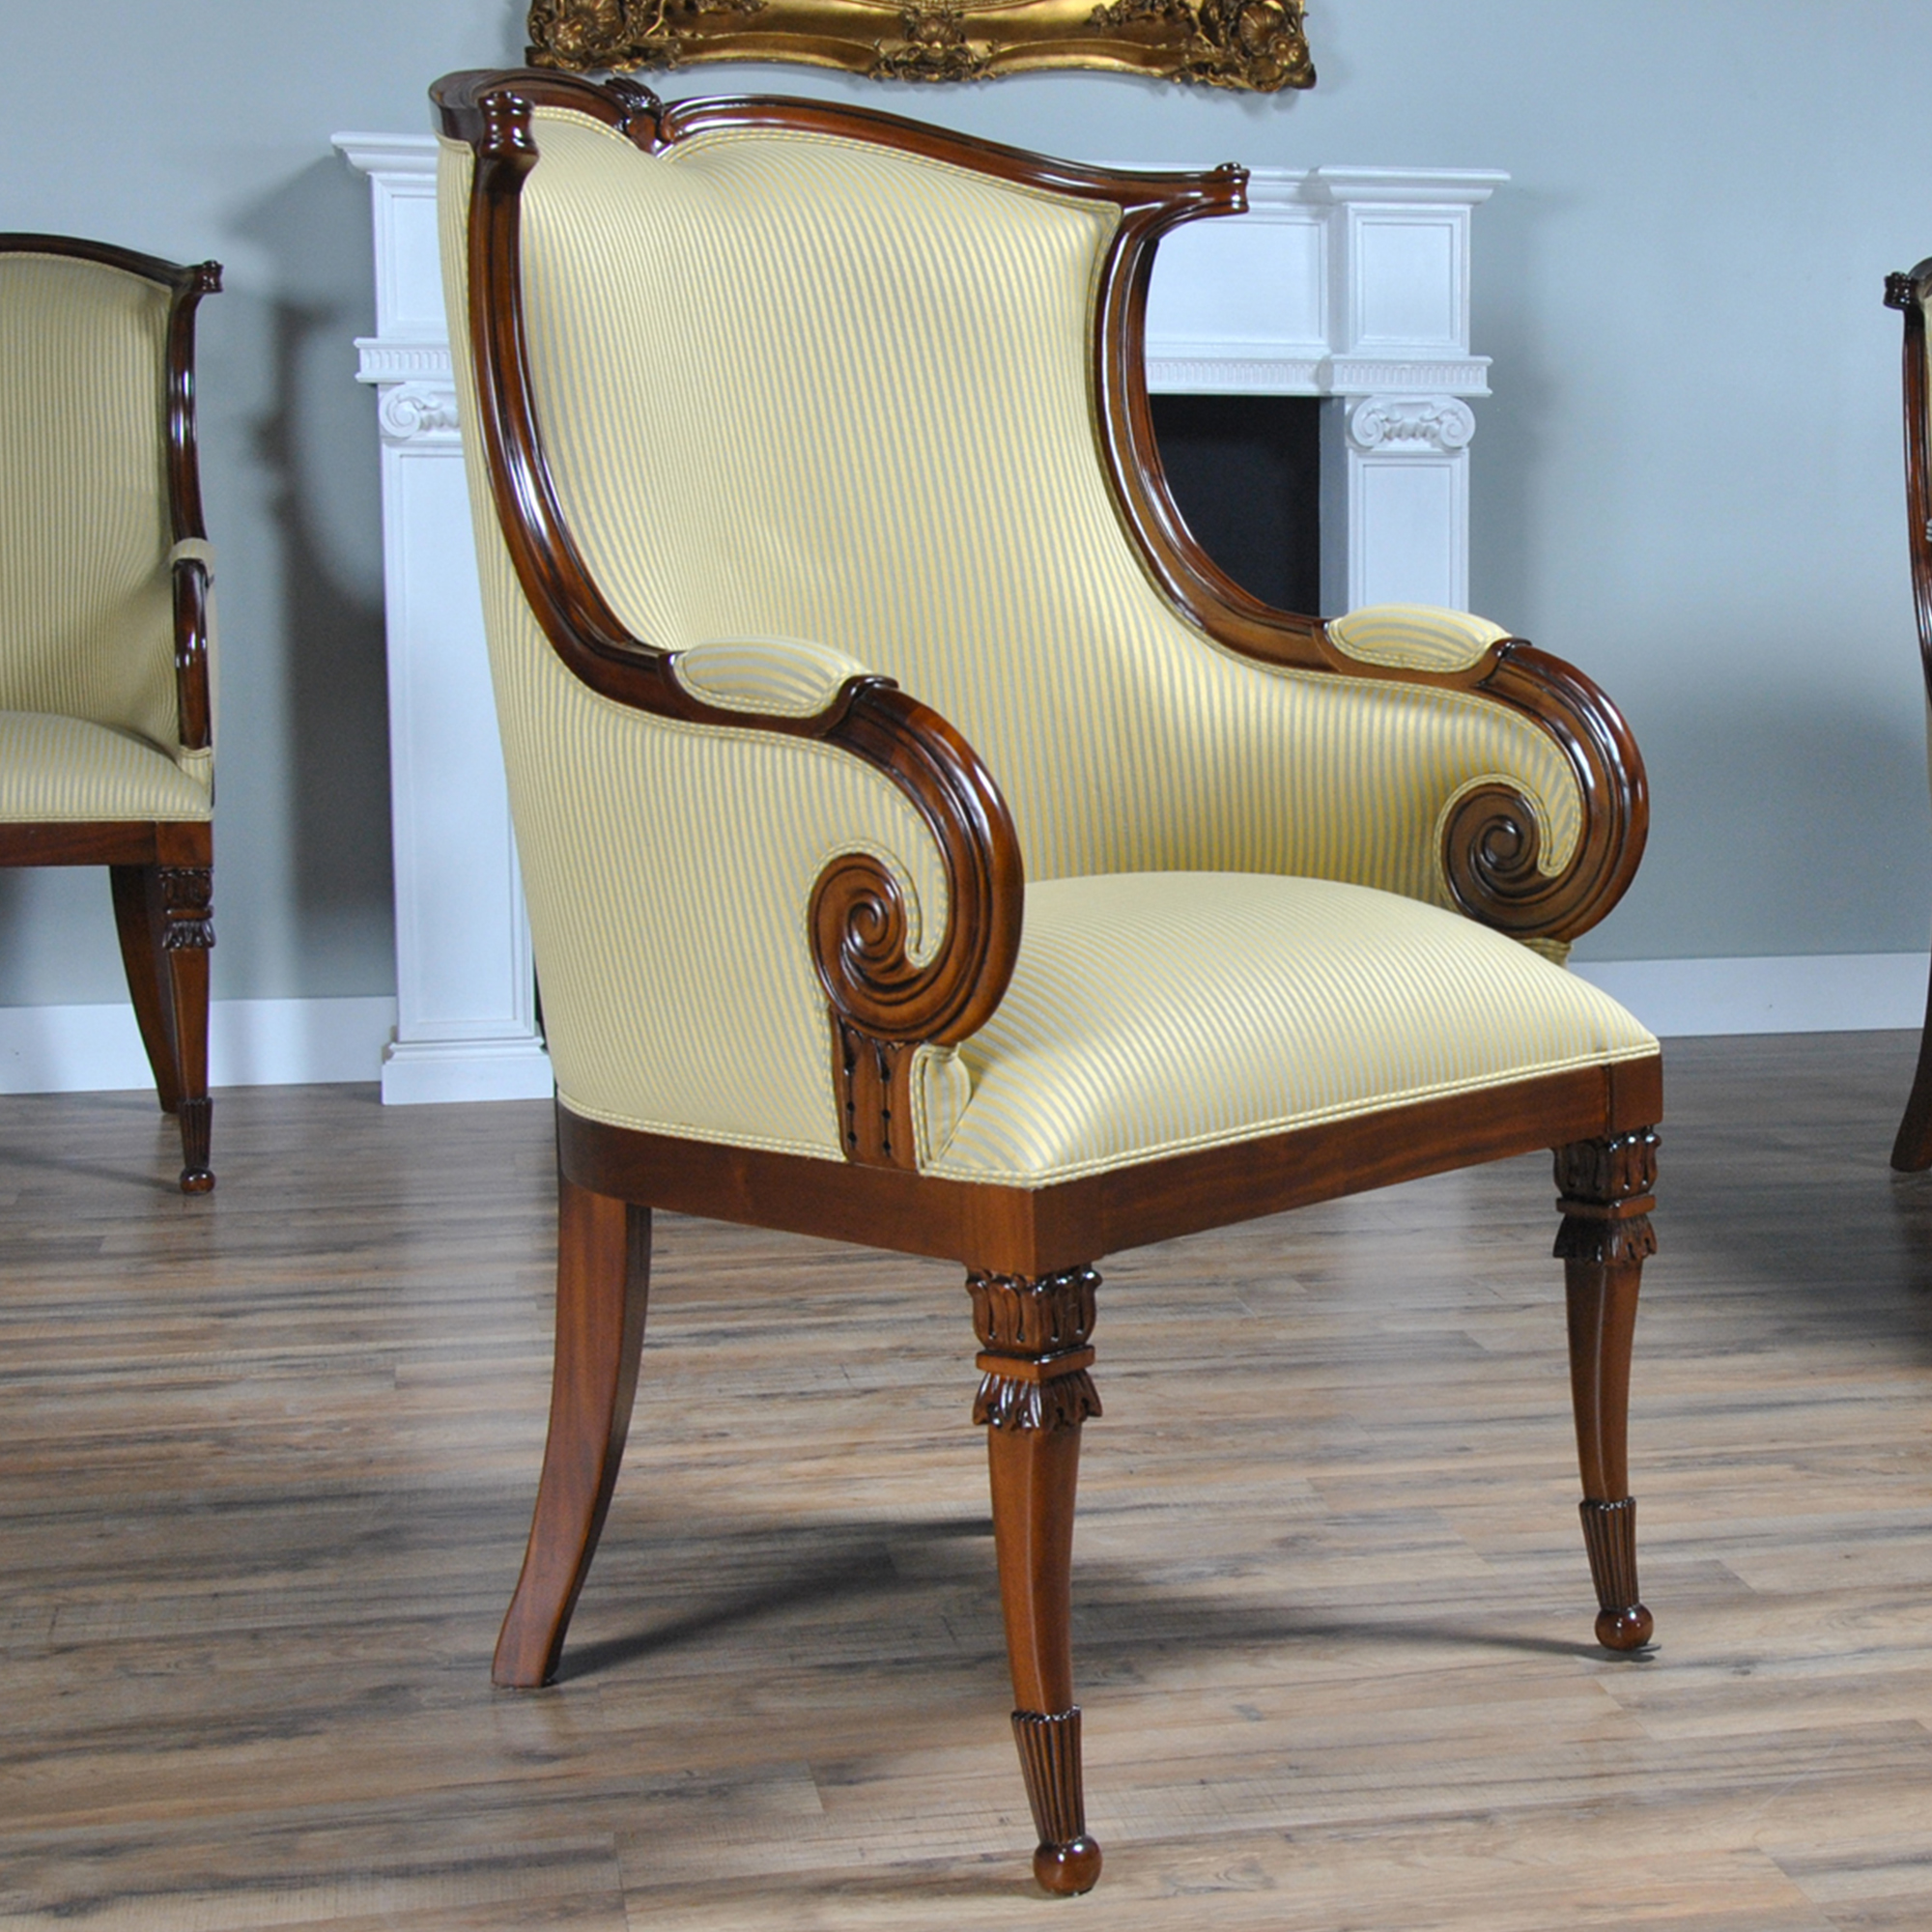 American Upholstered Arm Chair, Niagara Furniture, solid